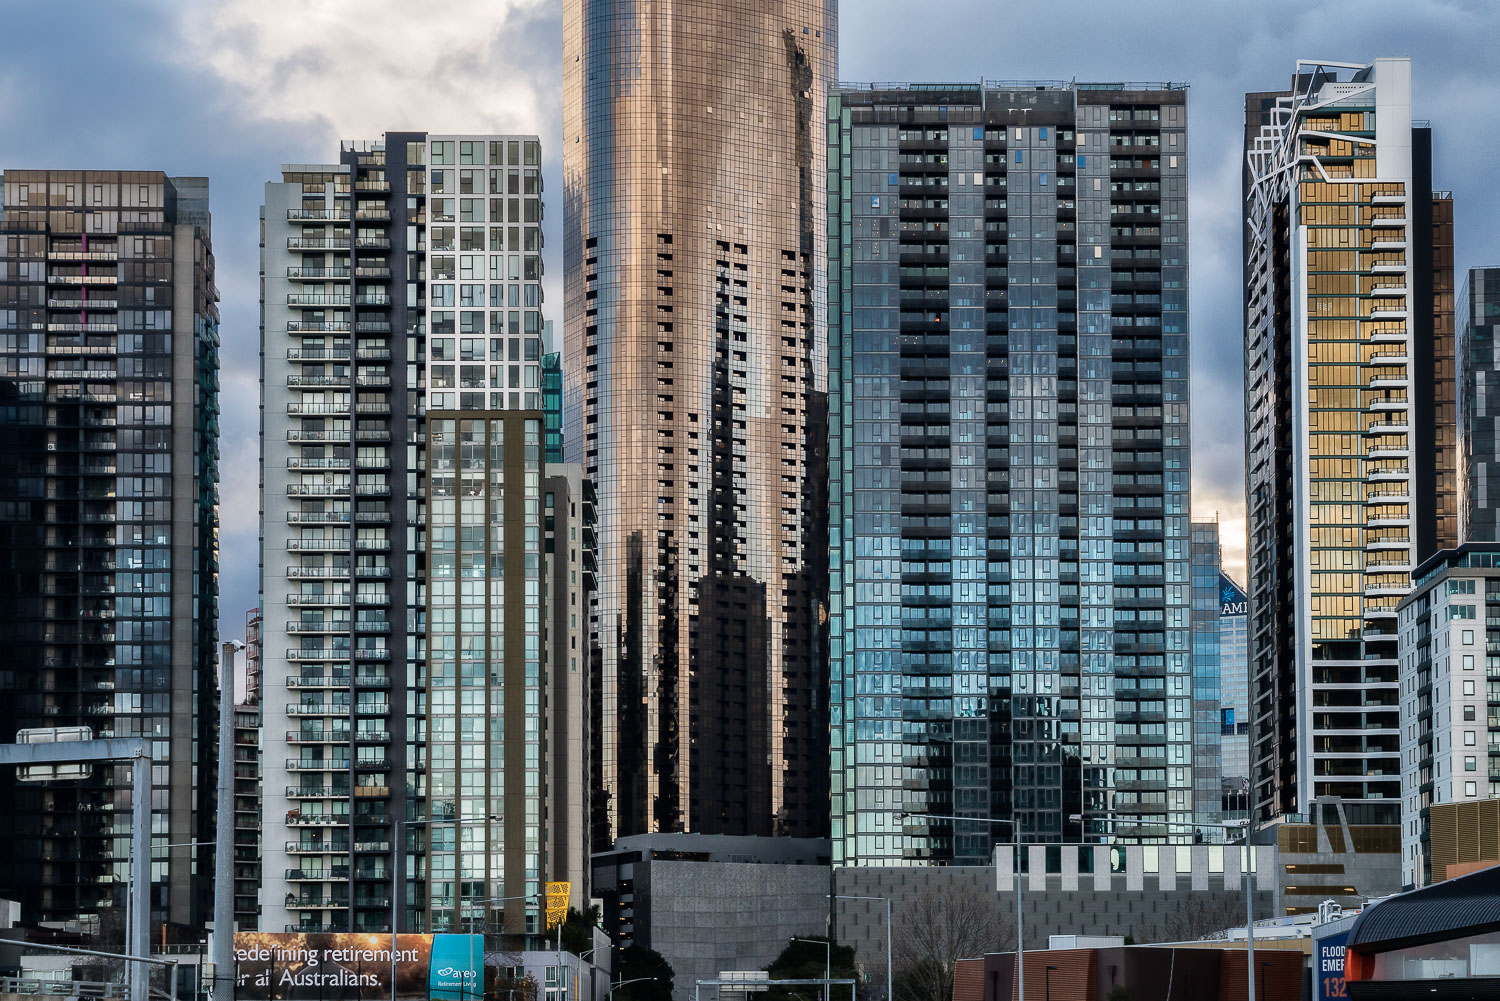 The glow of the    golden hour    illuminates these skyscrapers in    Lorimer Street    on the edge of the    Docklands precinct, Melbourne   .